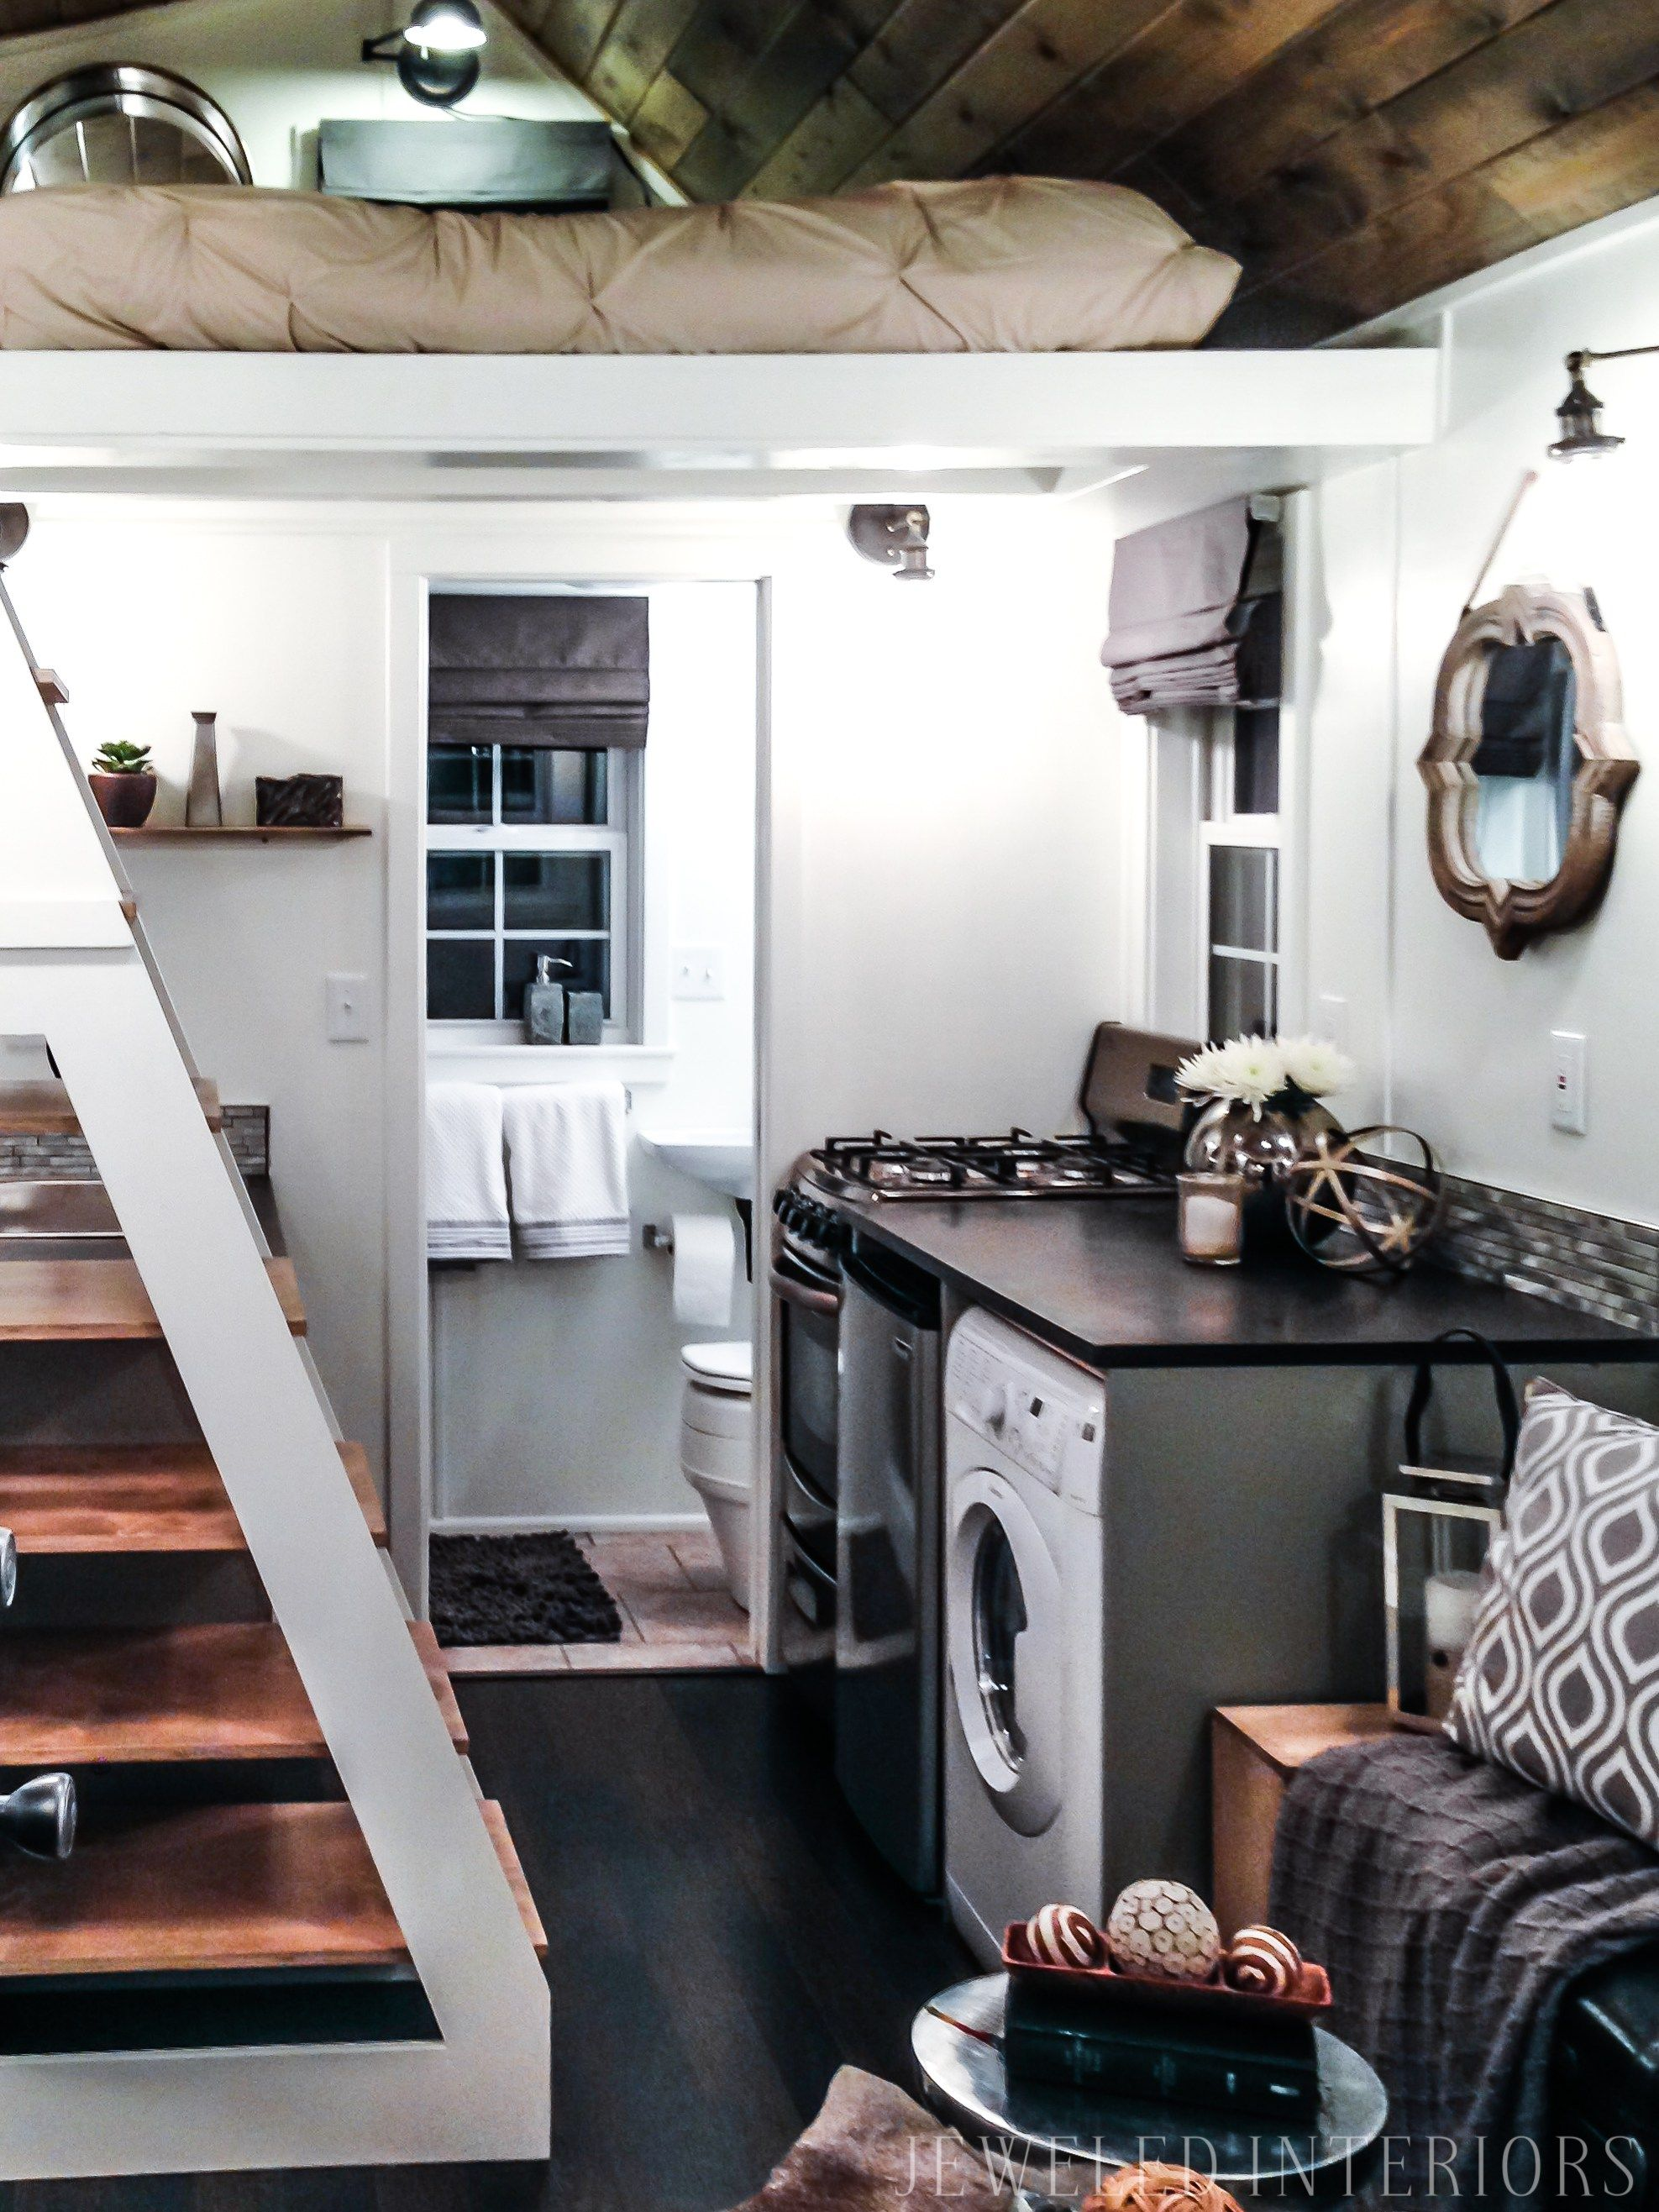 medium resolution of tiny home tiny house jeweled interiors porch kitchen living room bedroom kitchen wheels loft decorate design beautiful stunning rustic chic